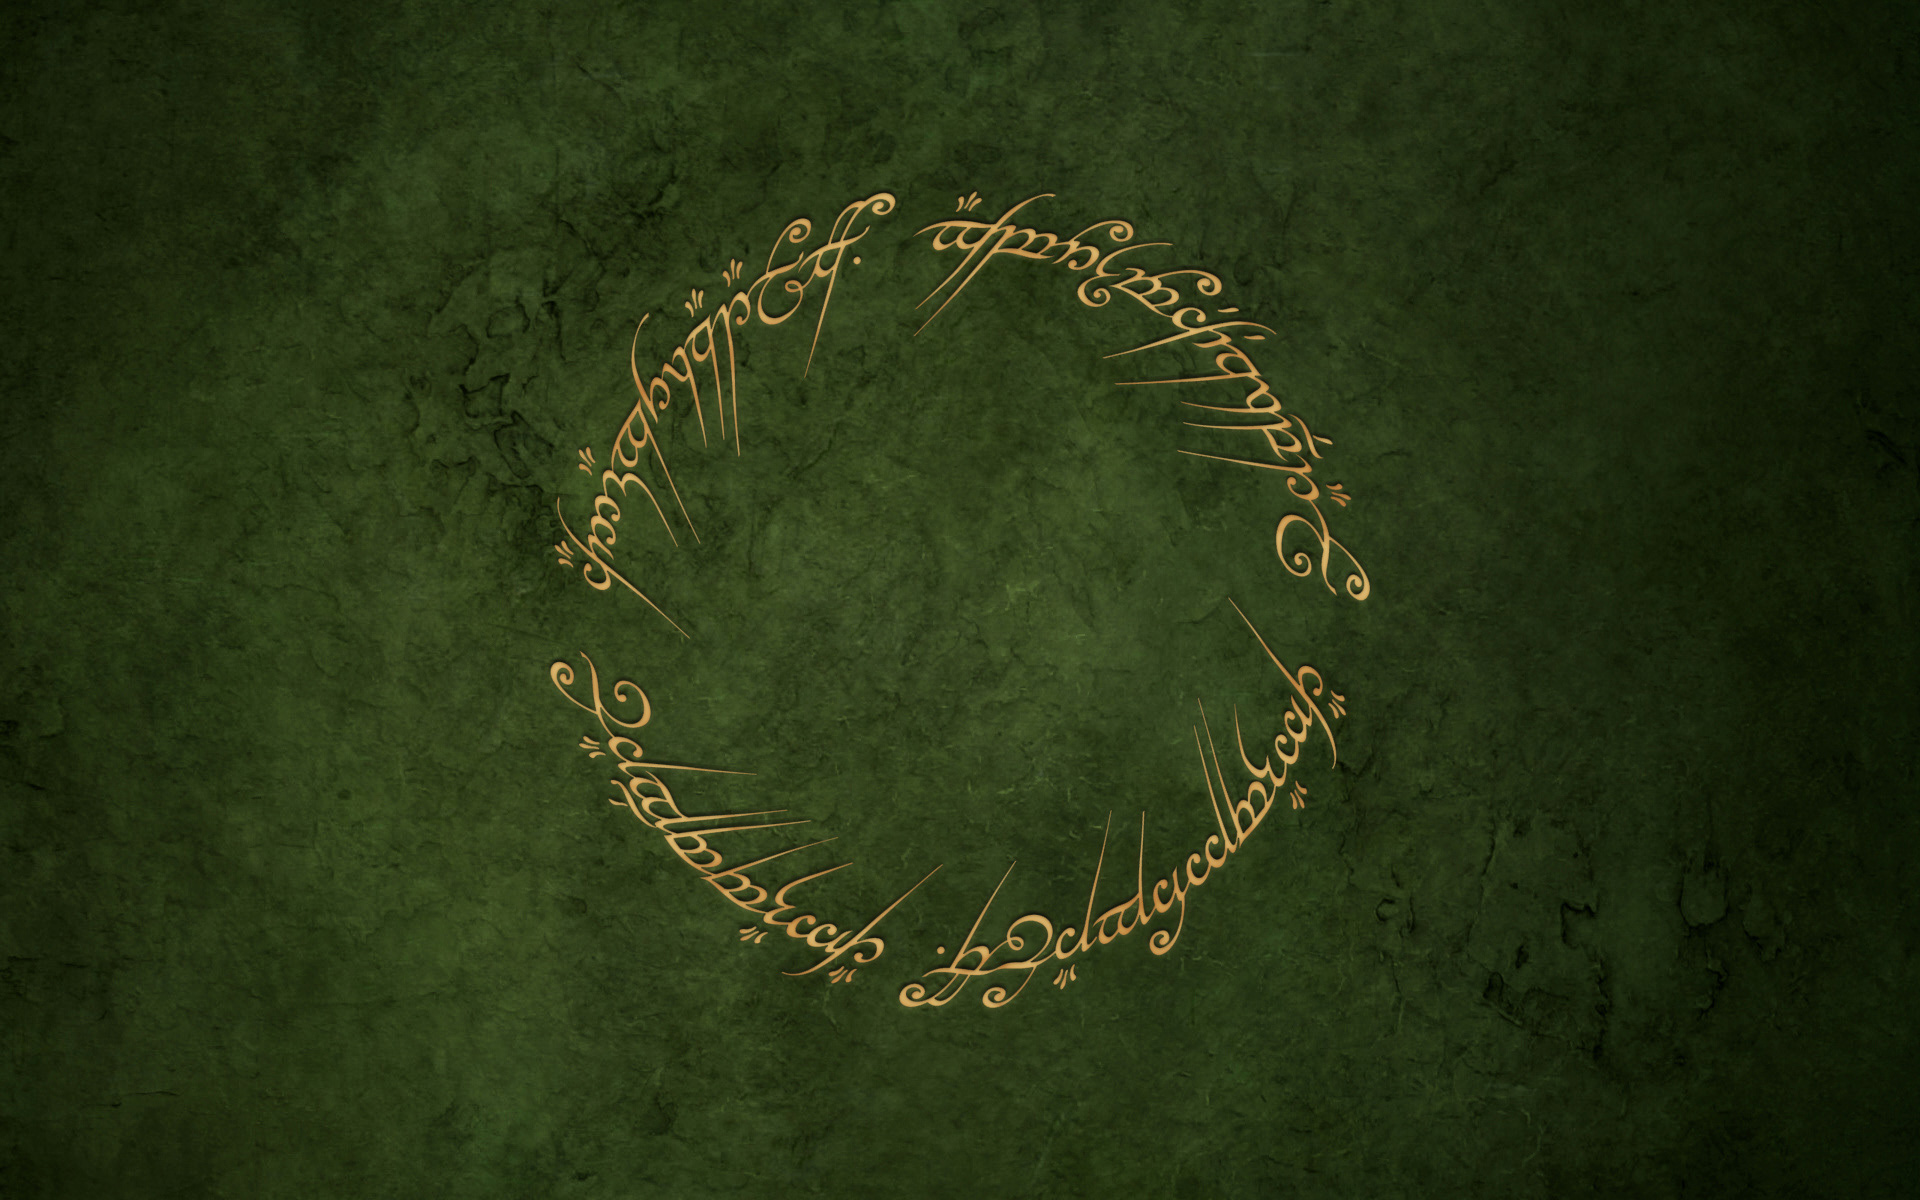 Lord Of The Rings wallpaper 37jpg 1920x1200